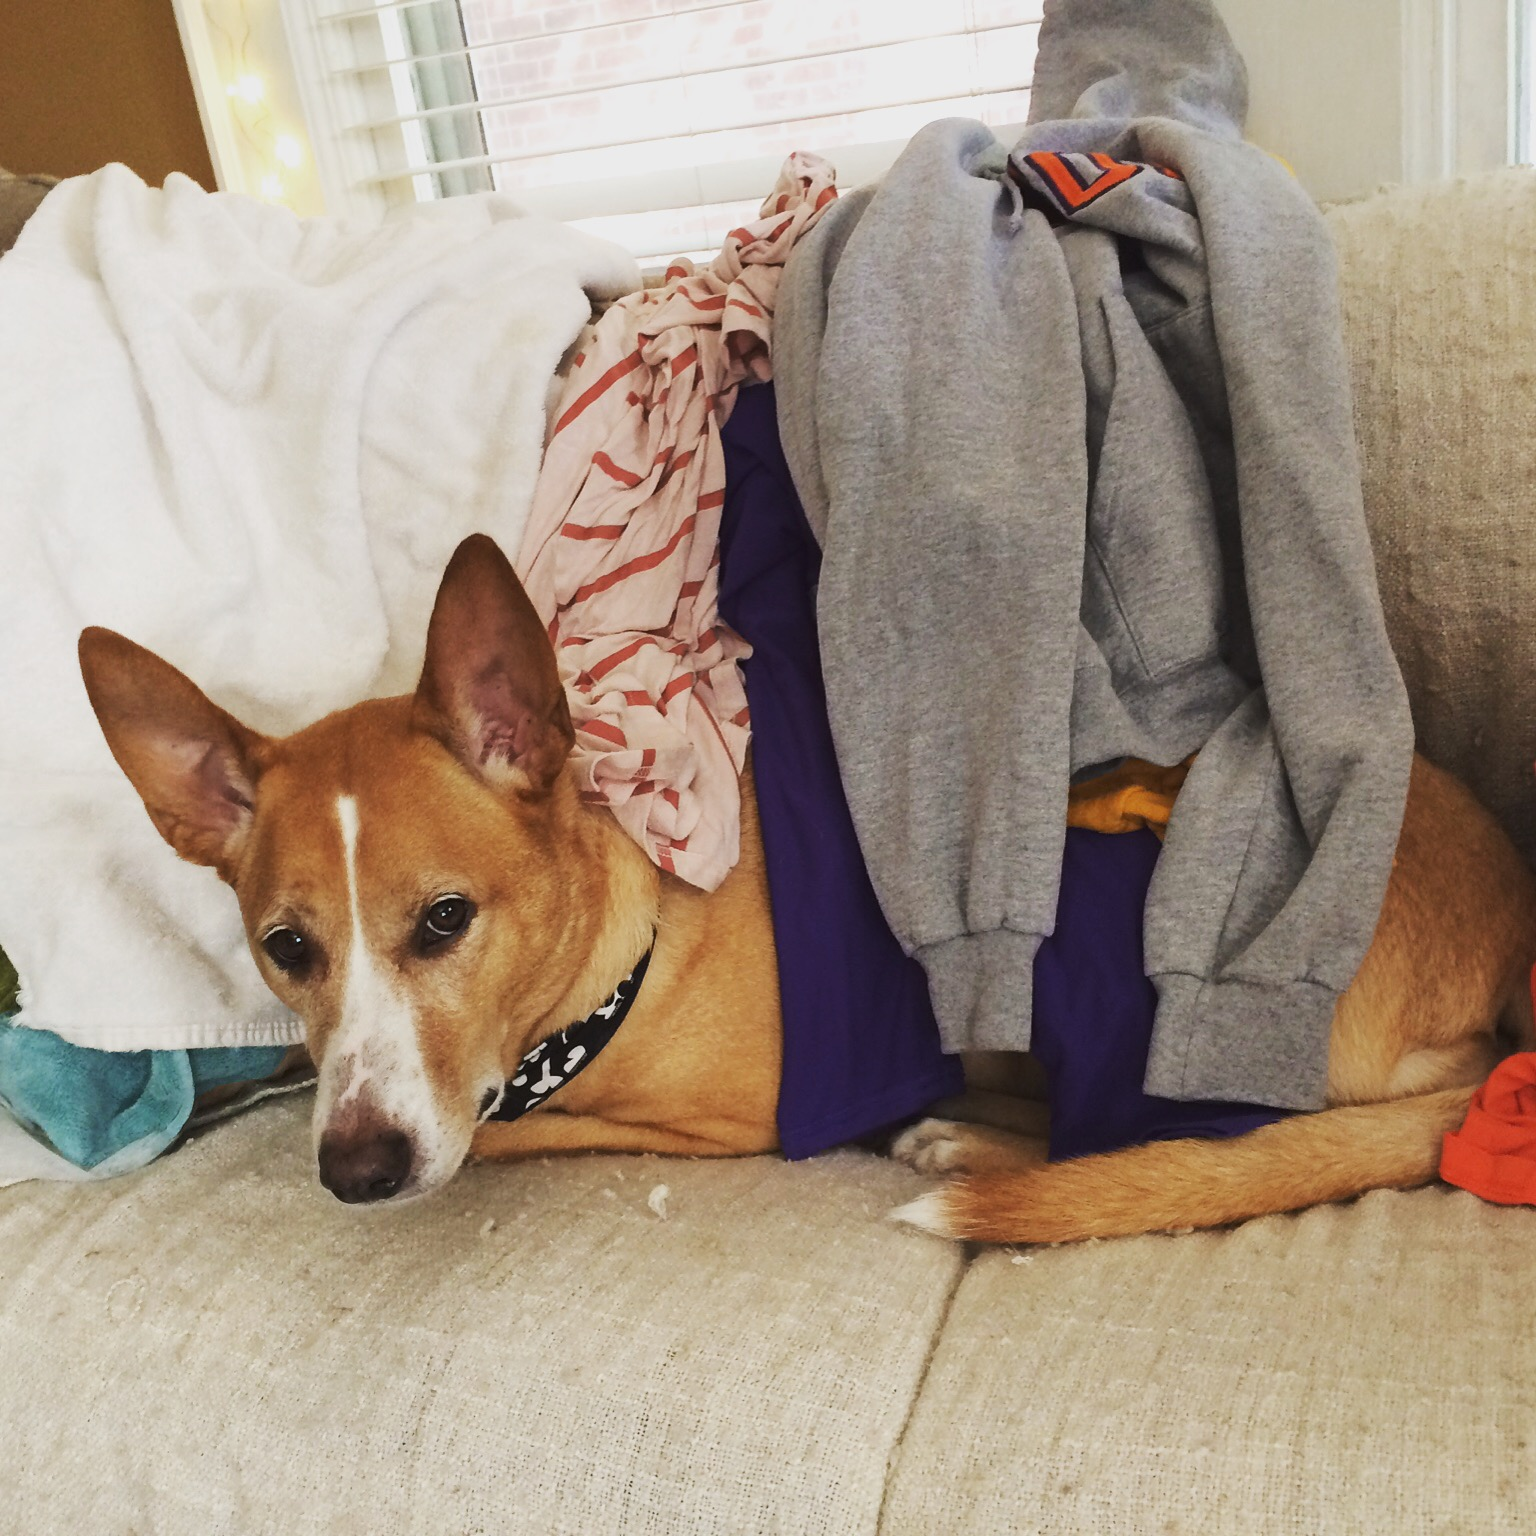 So bored I helped with the laundry.